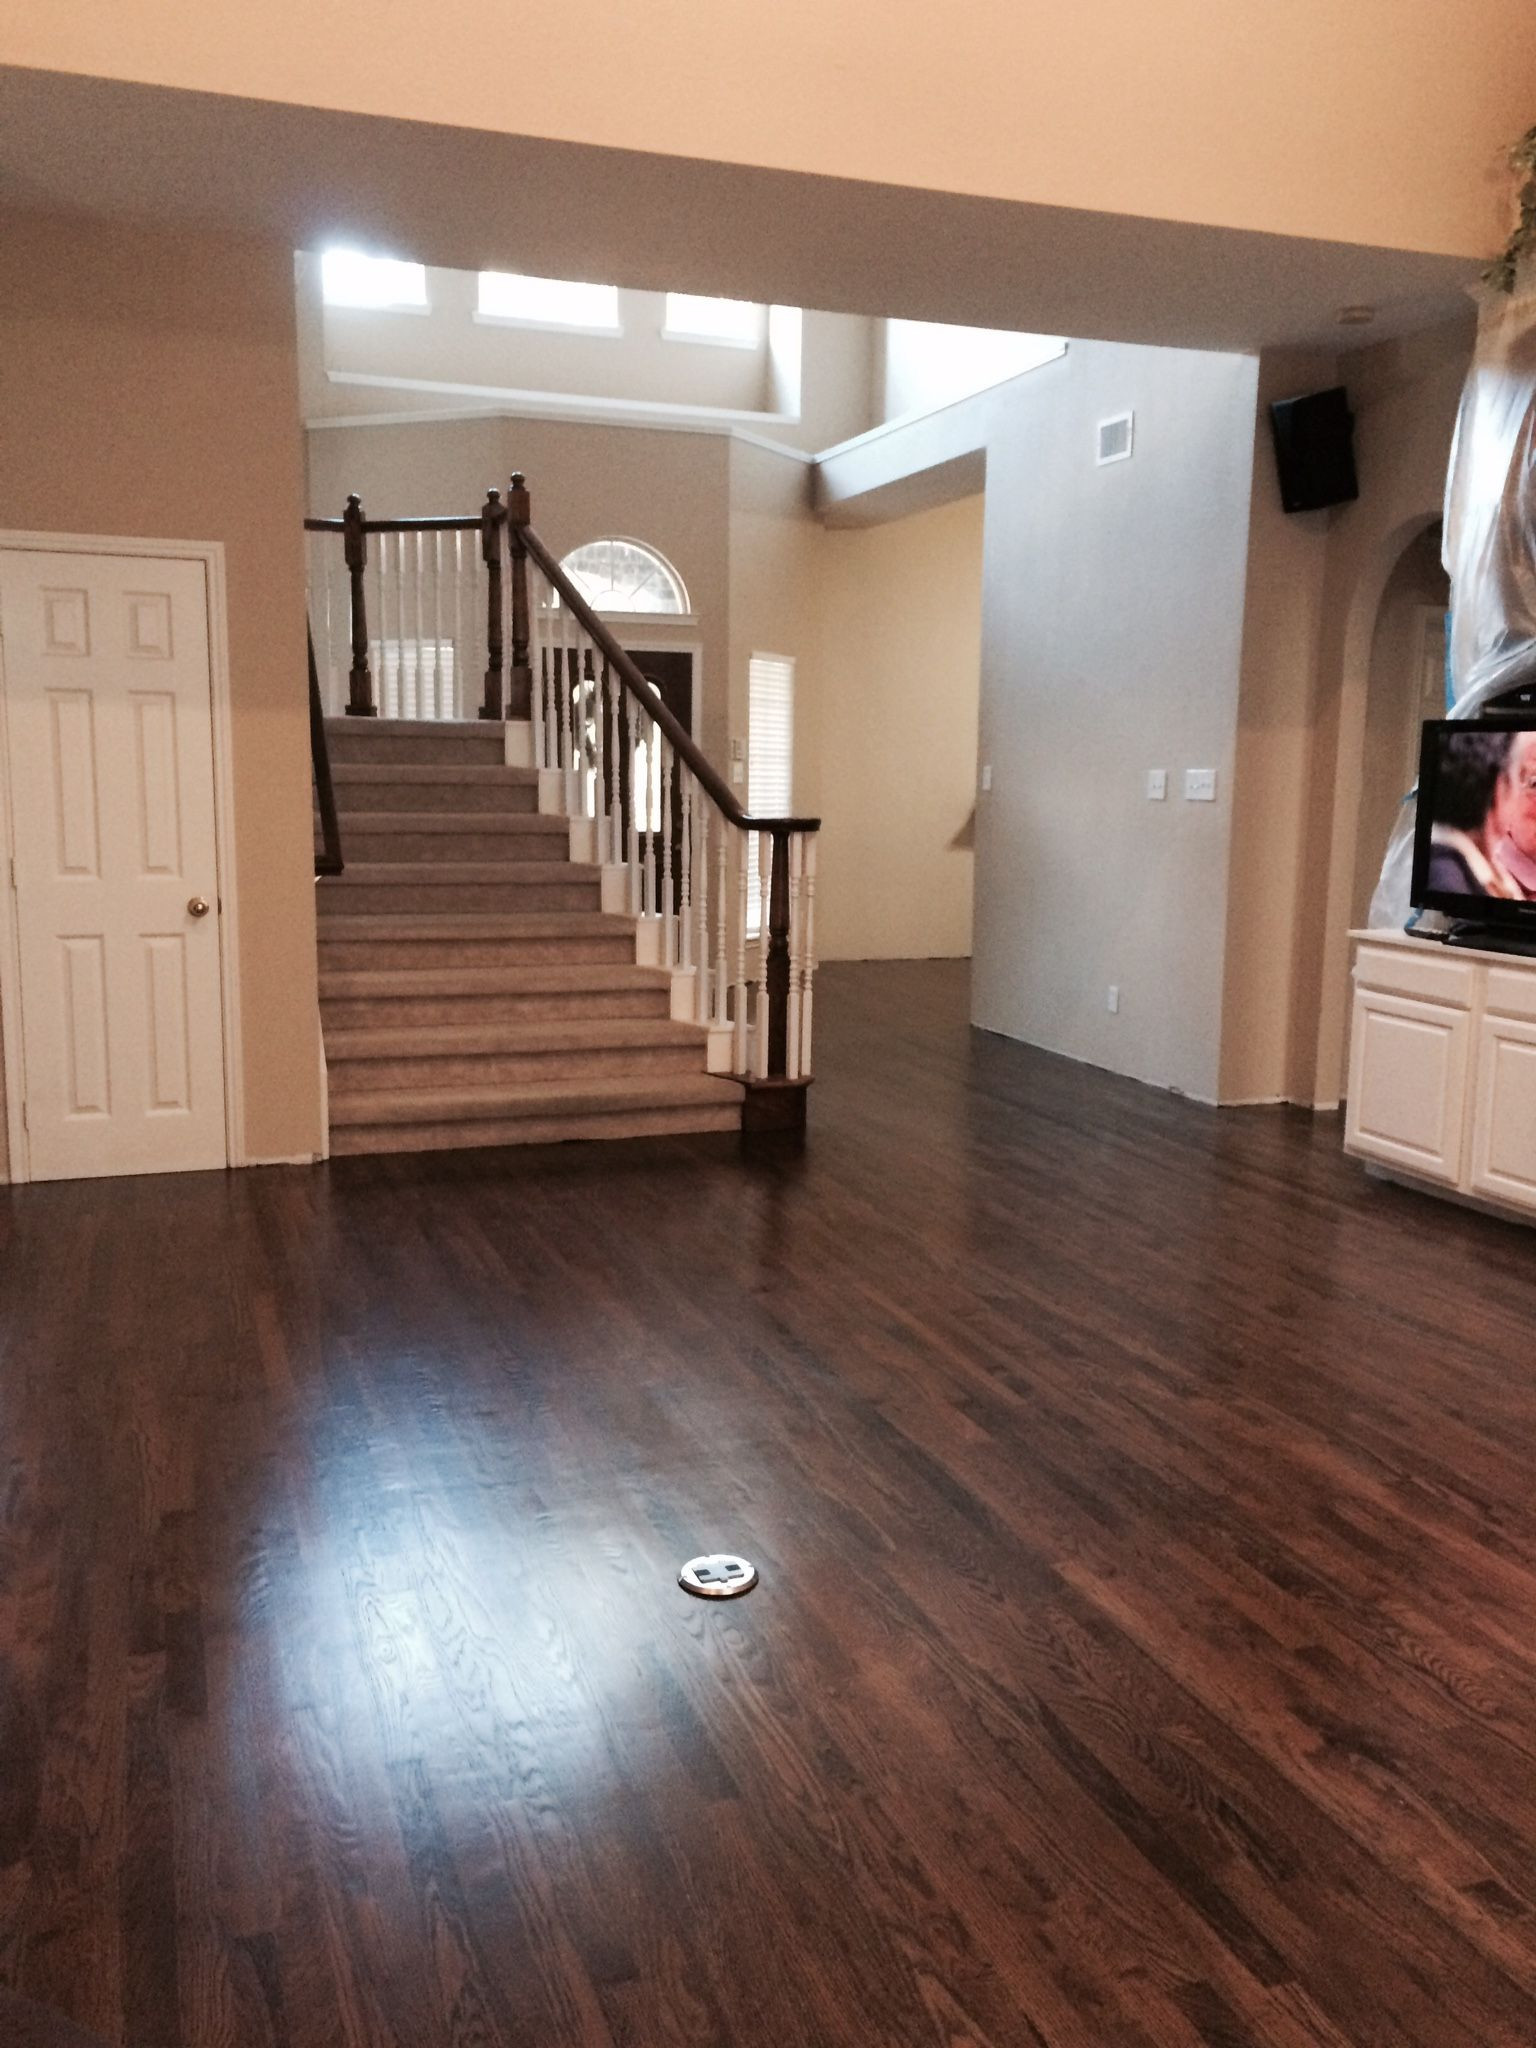 before and after pictures of refinished hardwood floors of dark walnut stain on white oak hardwood remodel 1floors in 2018 with regard to dark walnut stain on white oak hardwood walnut hardwood flooring hardwood floor stain colors